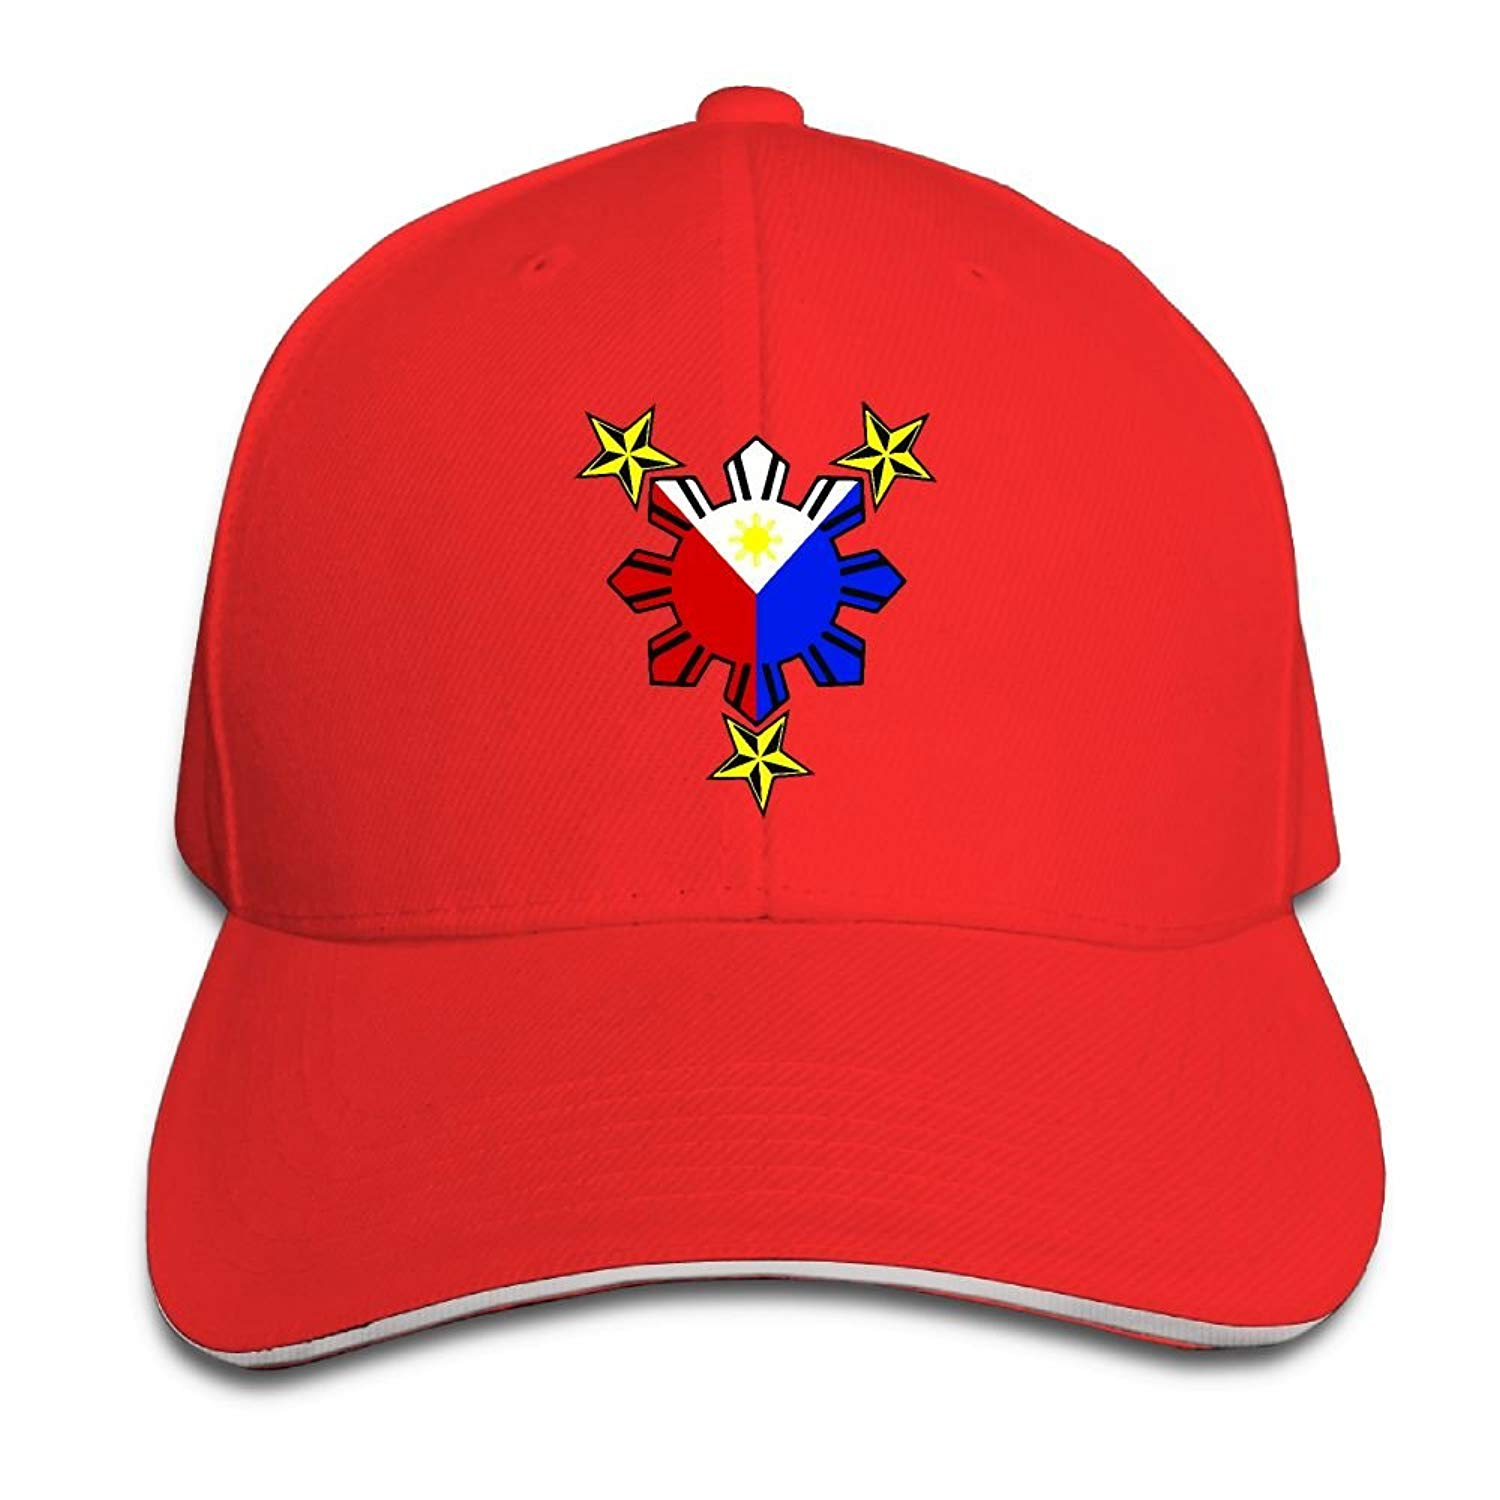 Baseball Cap for Men /& Women Tribal Philippines Filipino Sun and Stars Flag Unisex Cotton Adjustable Jeans Cap Hat